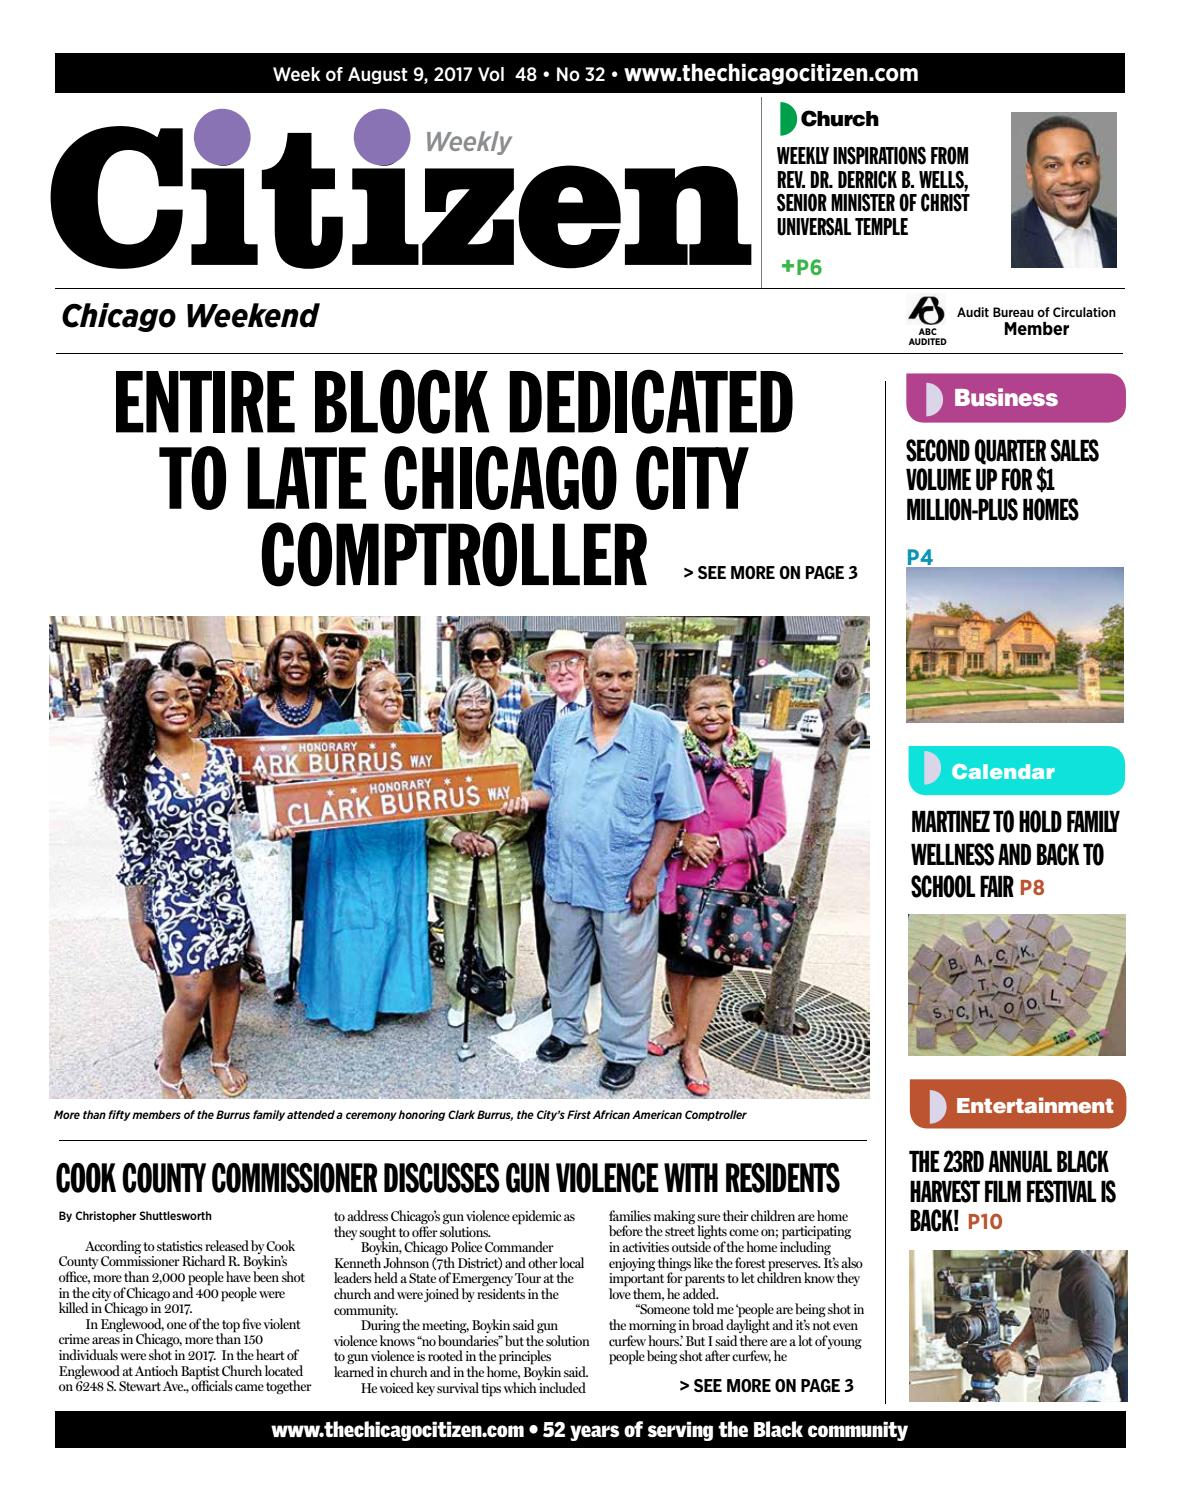 Facing weekend august 9 2017 by CHICAGO CITIZEN NEWSPAPERS